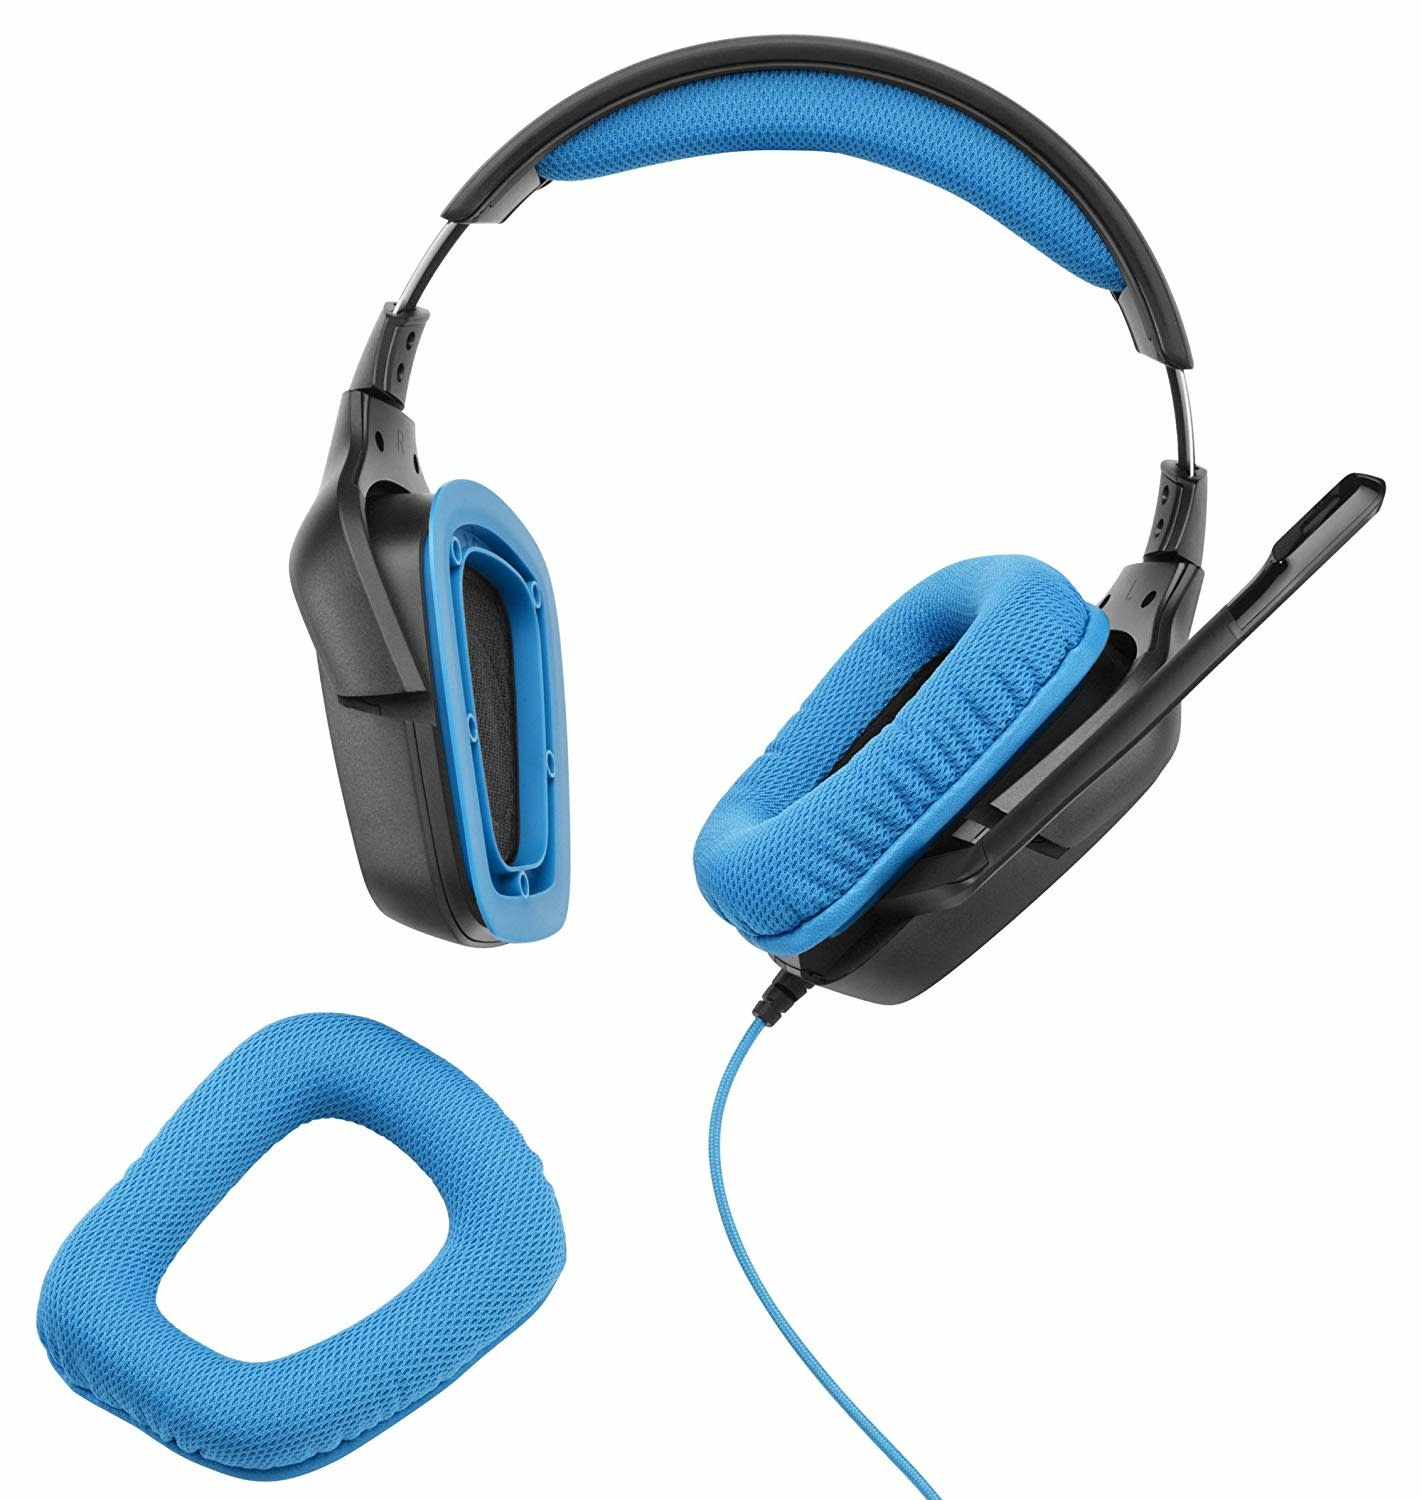 f3cf9b303ba Logitech Logitech G430 7.1 DTS Headphone: X and Dolby Surround Sound Gaming  Headset for PC